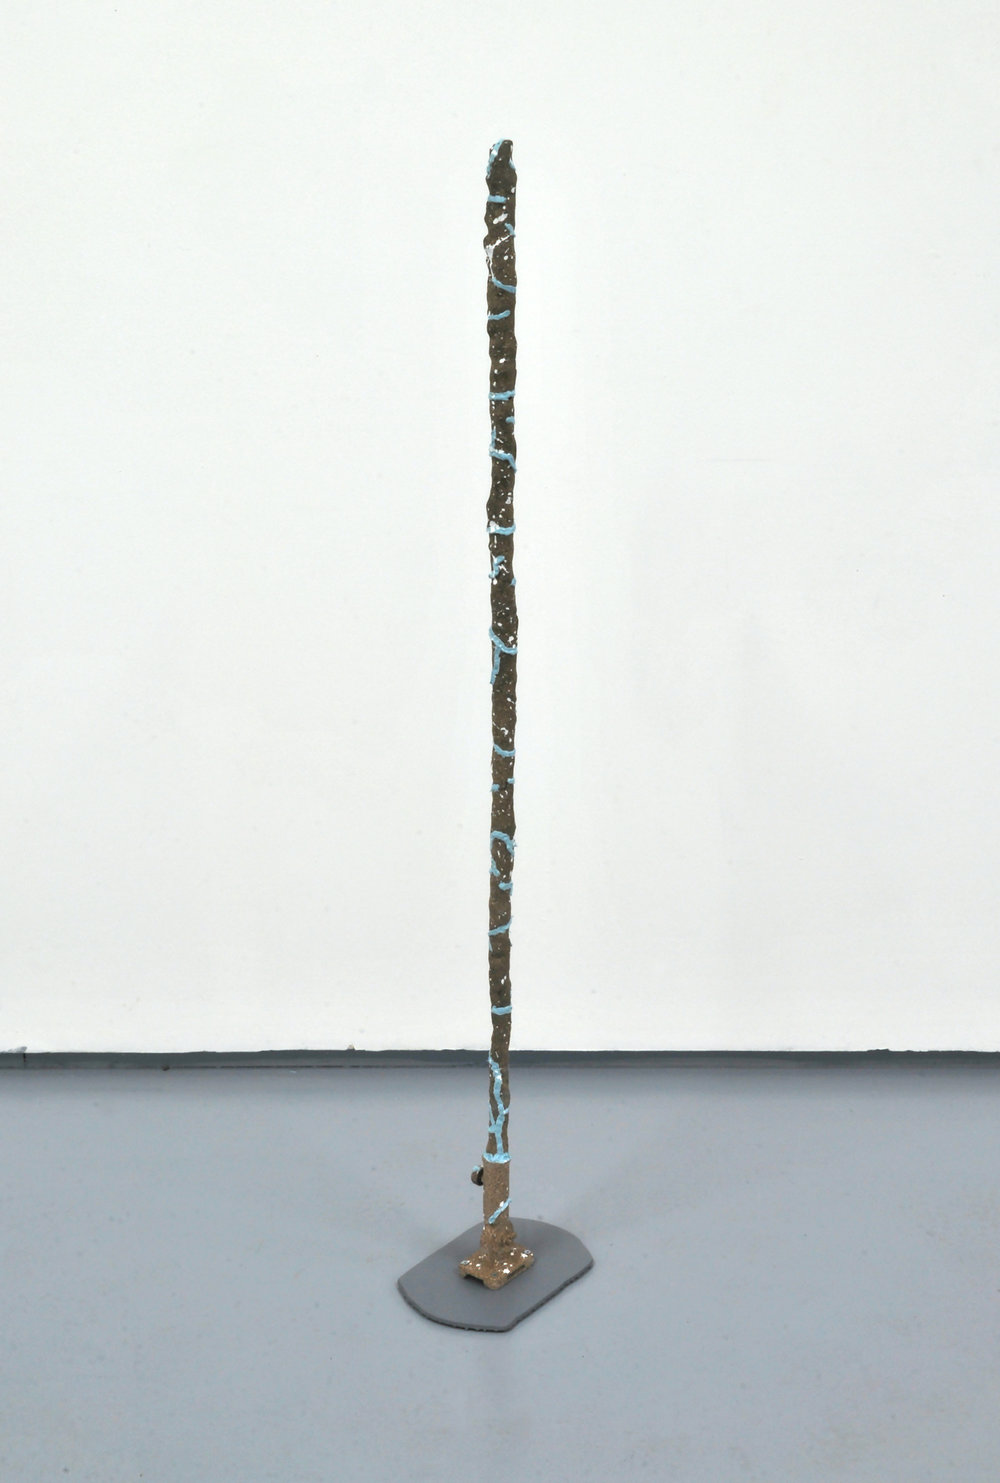 Pole (Quartz Marble Granite #2)  Acrylic, enamel, clay, wood, metal hardware, MDF  10 x 53 x 7 inches  2014